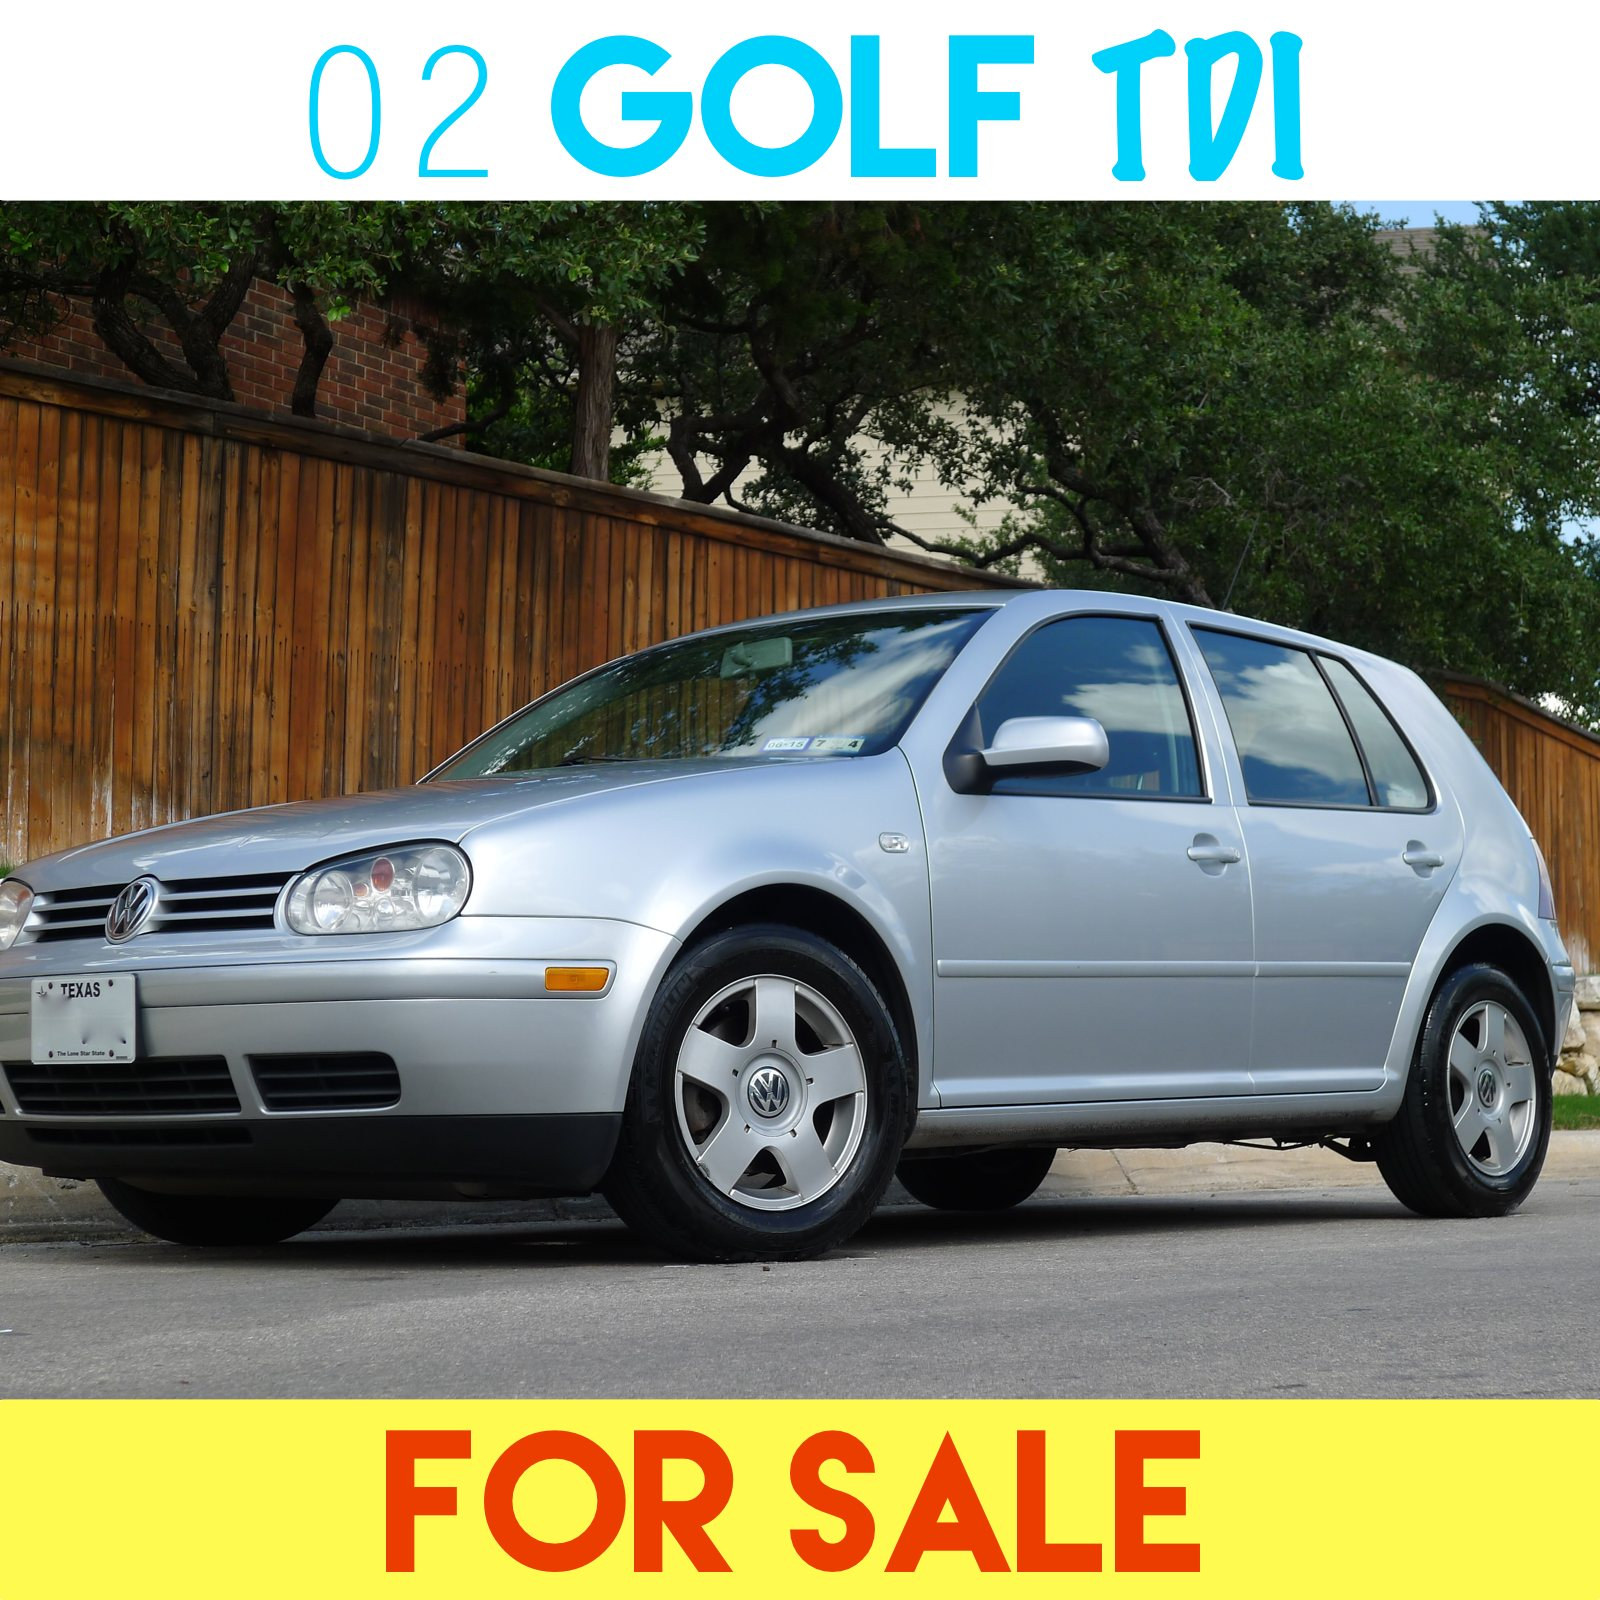 2002 VW Golf TDI 5-speed For Sale